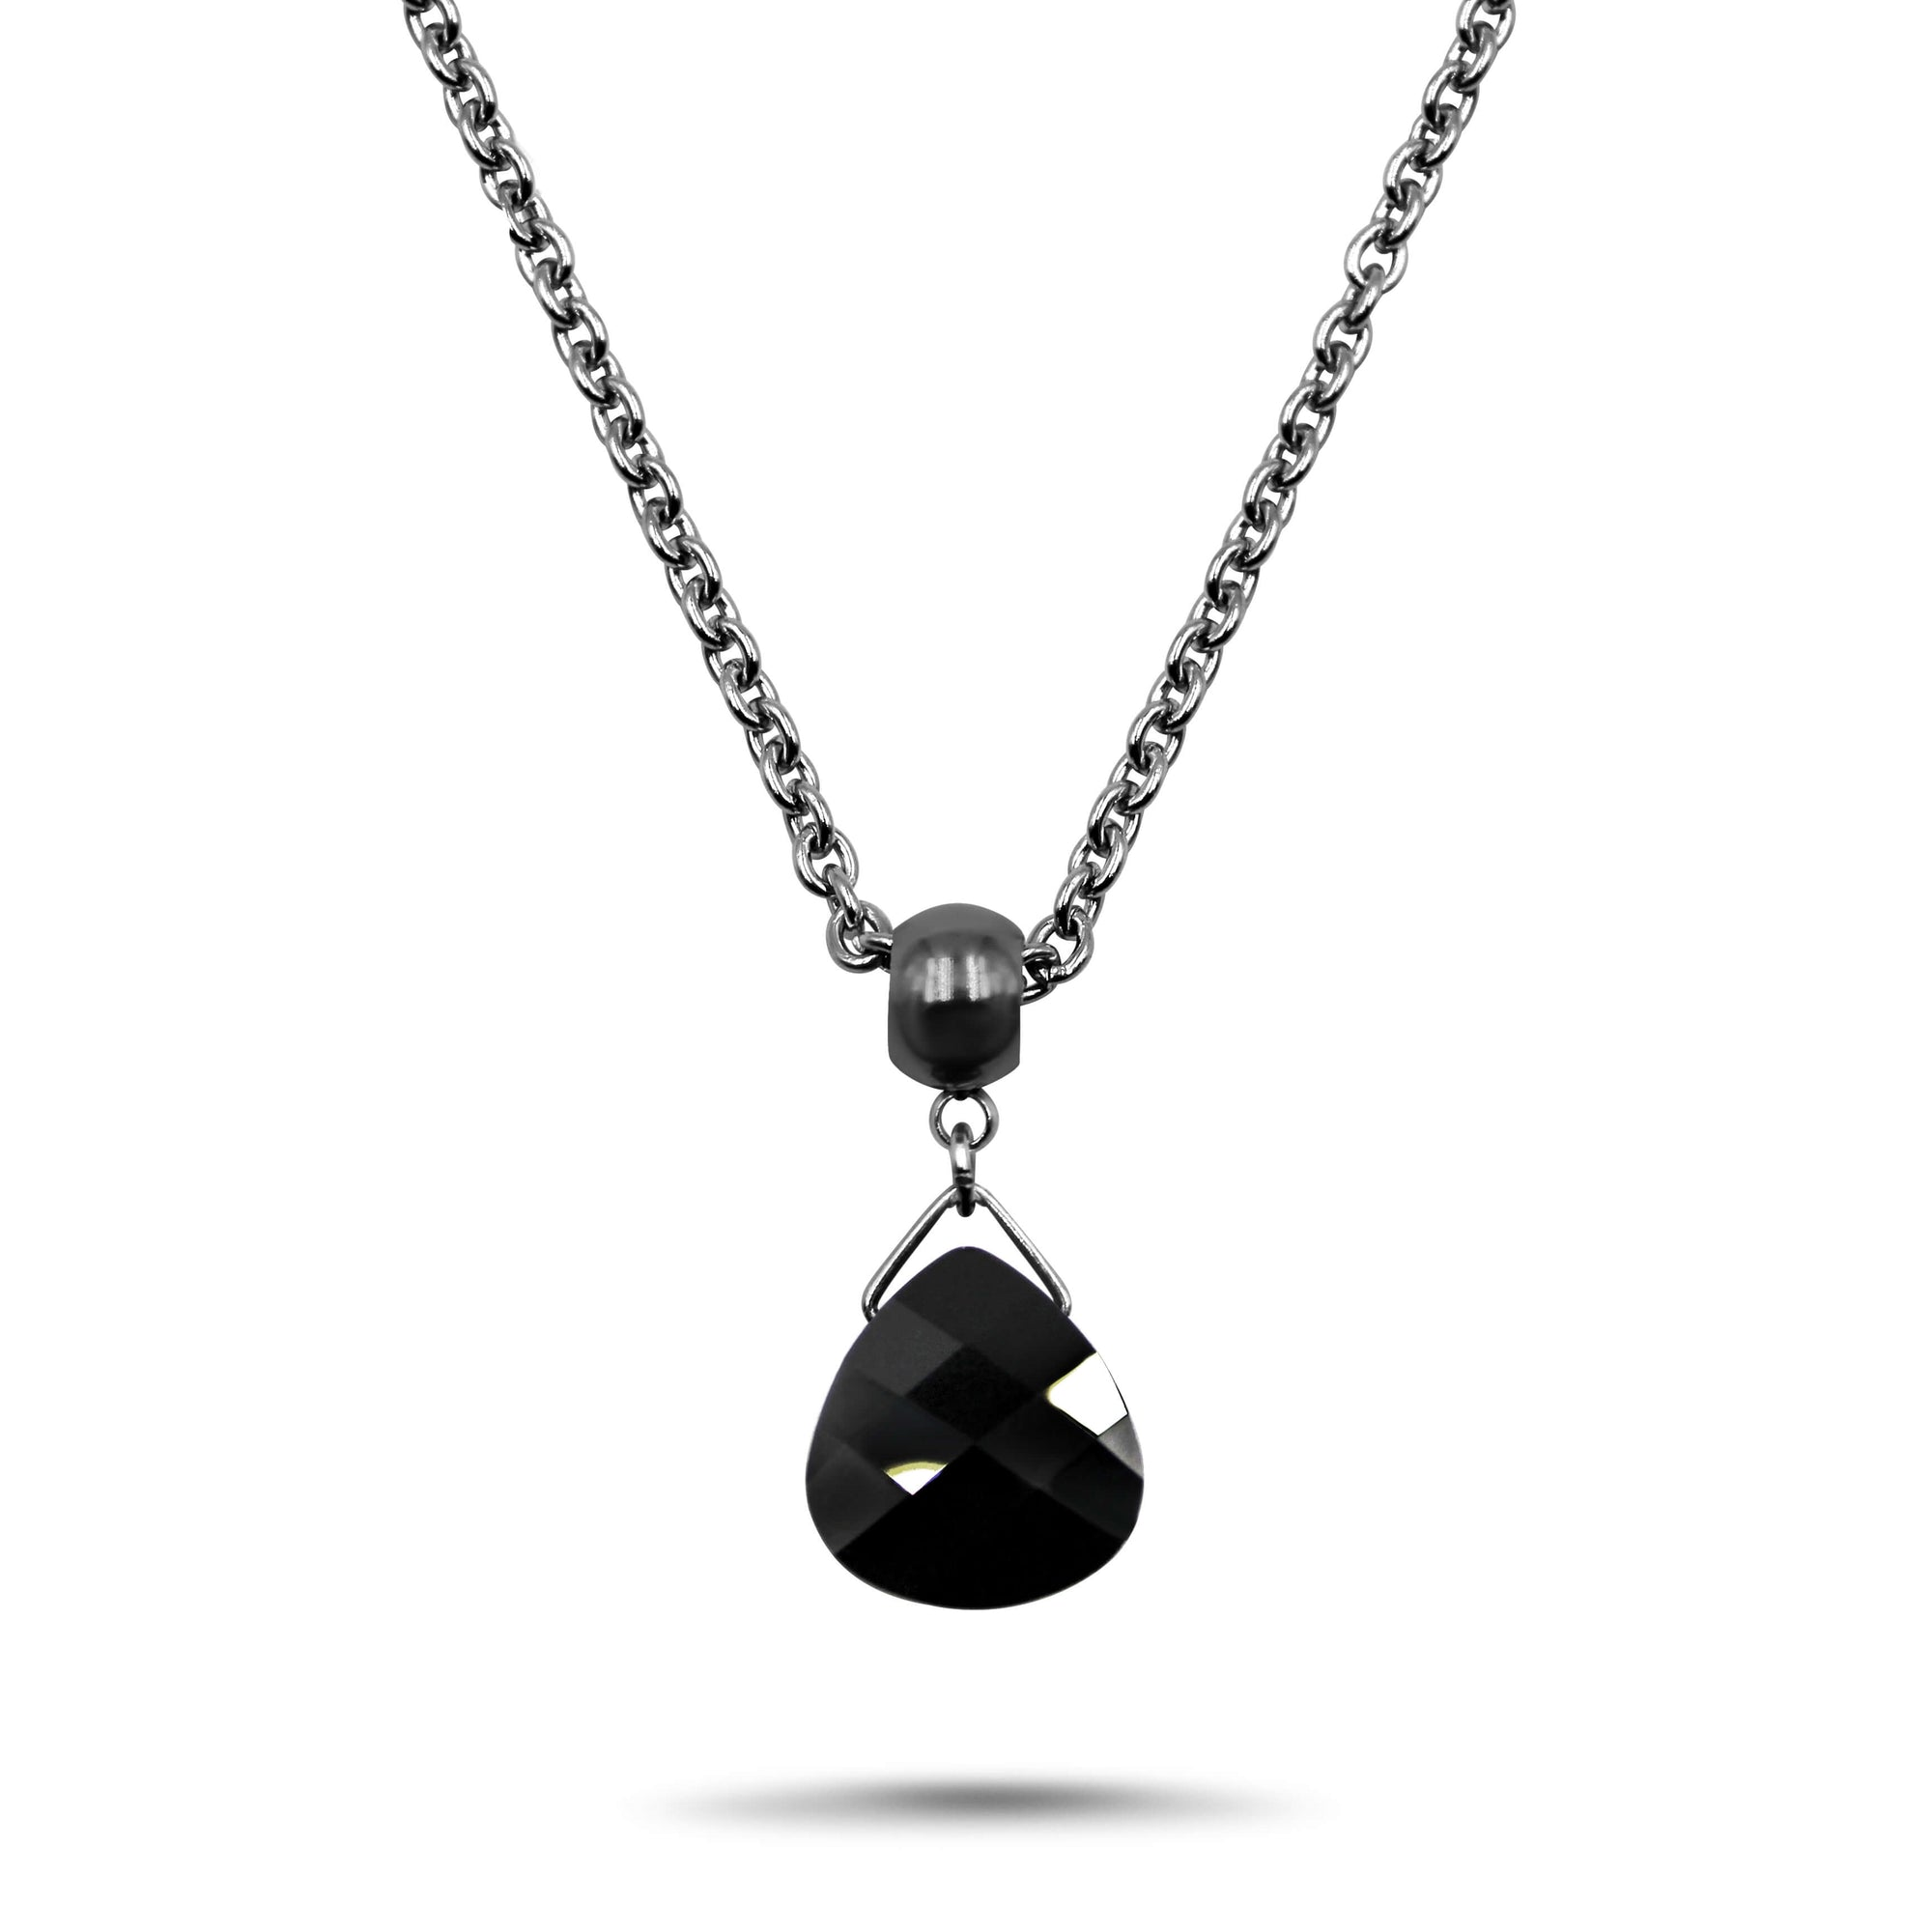 Jet Black Swarovski Crystal Necklace - Creative Jewelry by Marcia - Asymmetrical Jewelry - Timeless Jewelry